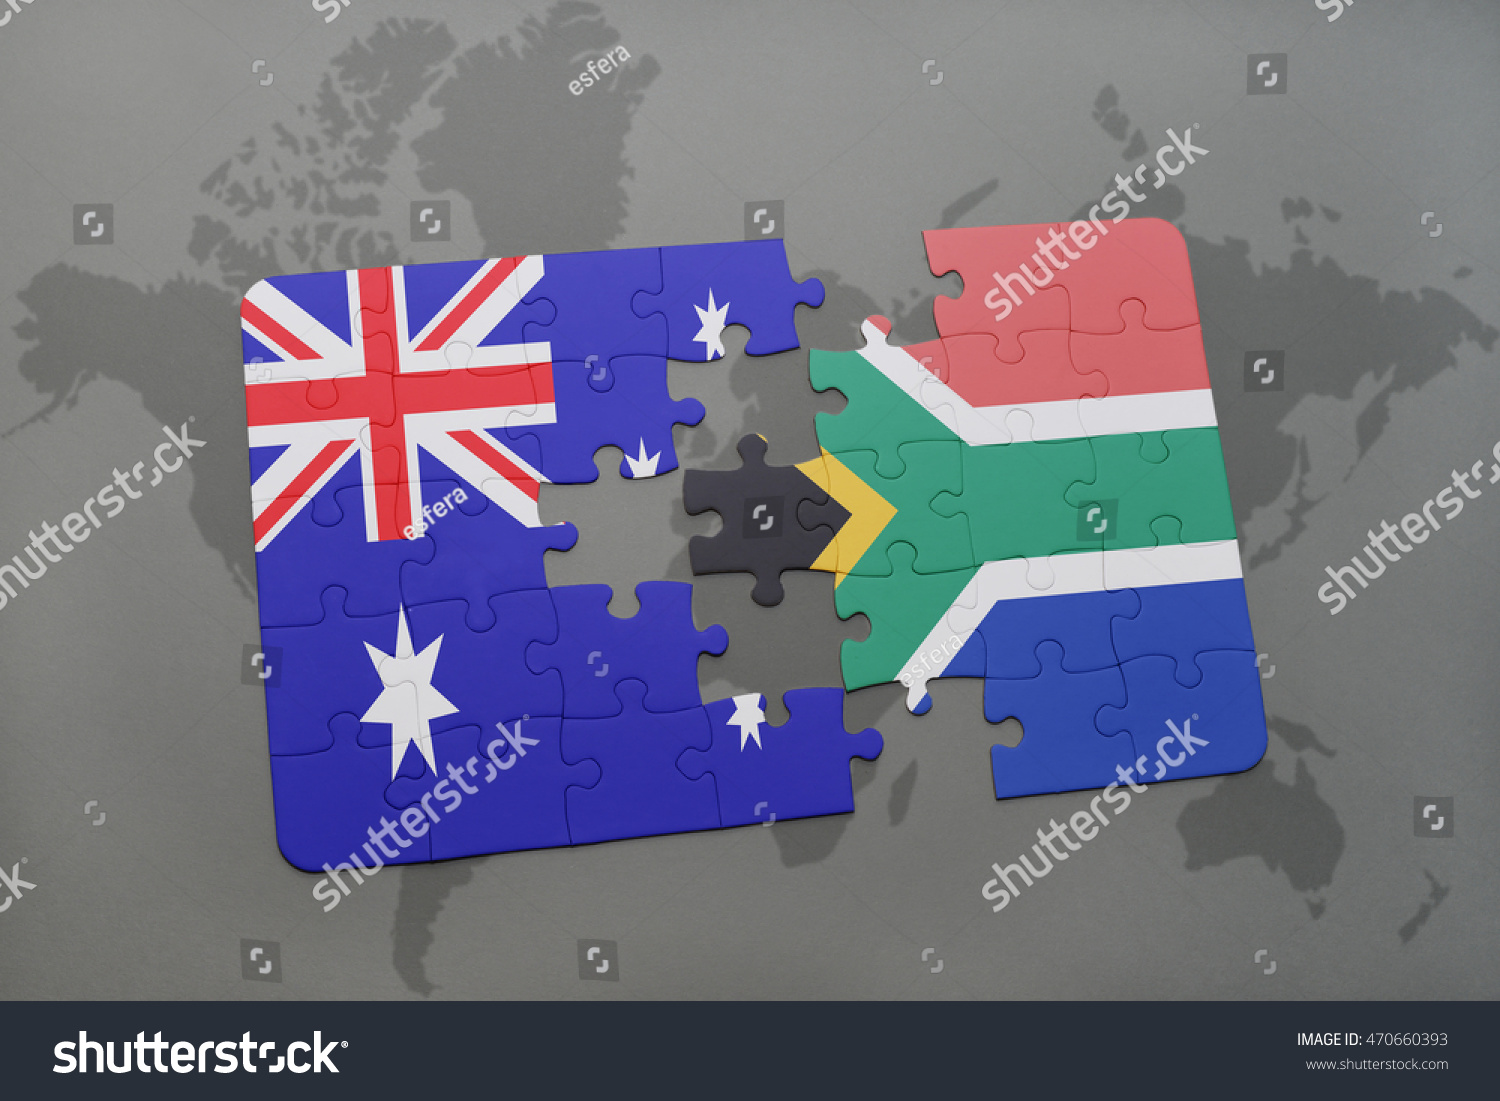 Puzzle national flag australia south africa stock illustration puzzle with the national flag of australia and south africa on a world map background gumiabroncs Choice Image